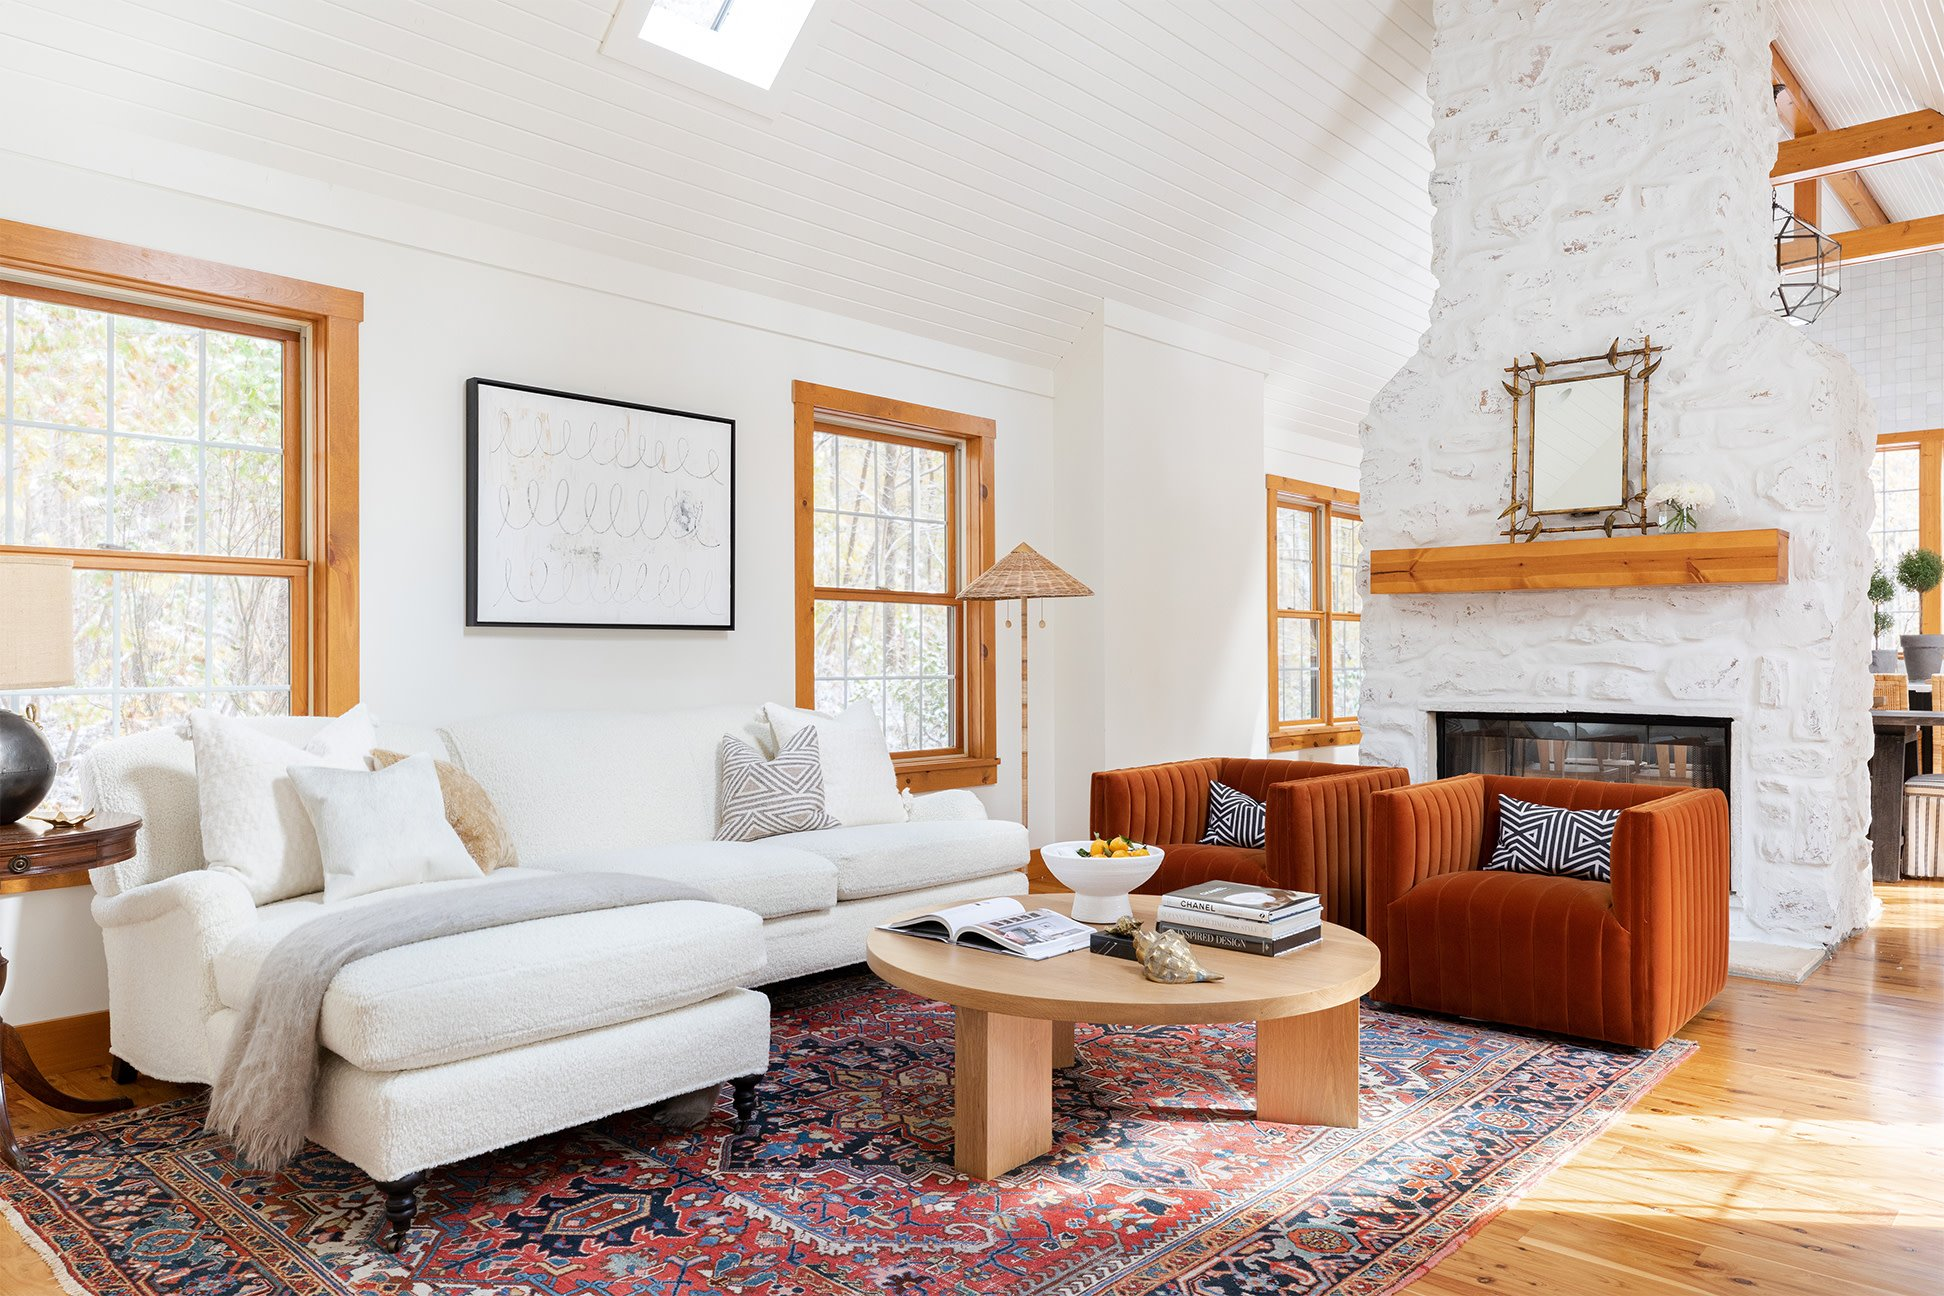 This Is What a 100 Percent Sustainable, Cruelty-Free Home Looks Like